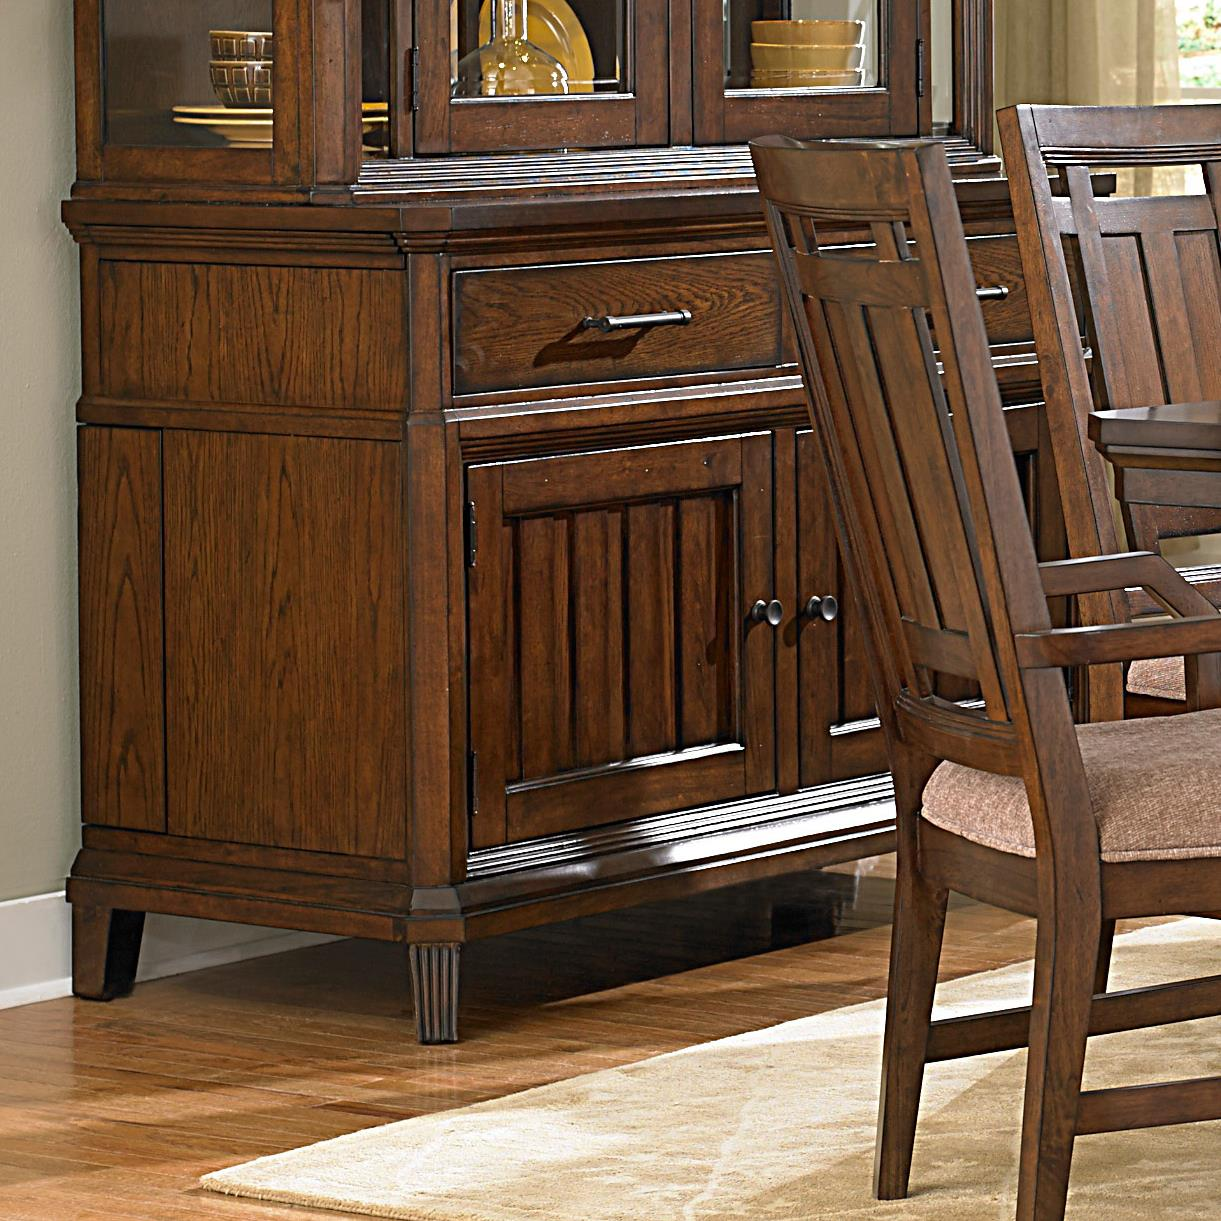 Broyhill Furniture Estes Park Sideboard - Item Number: 4364-513